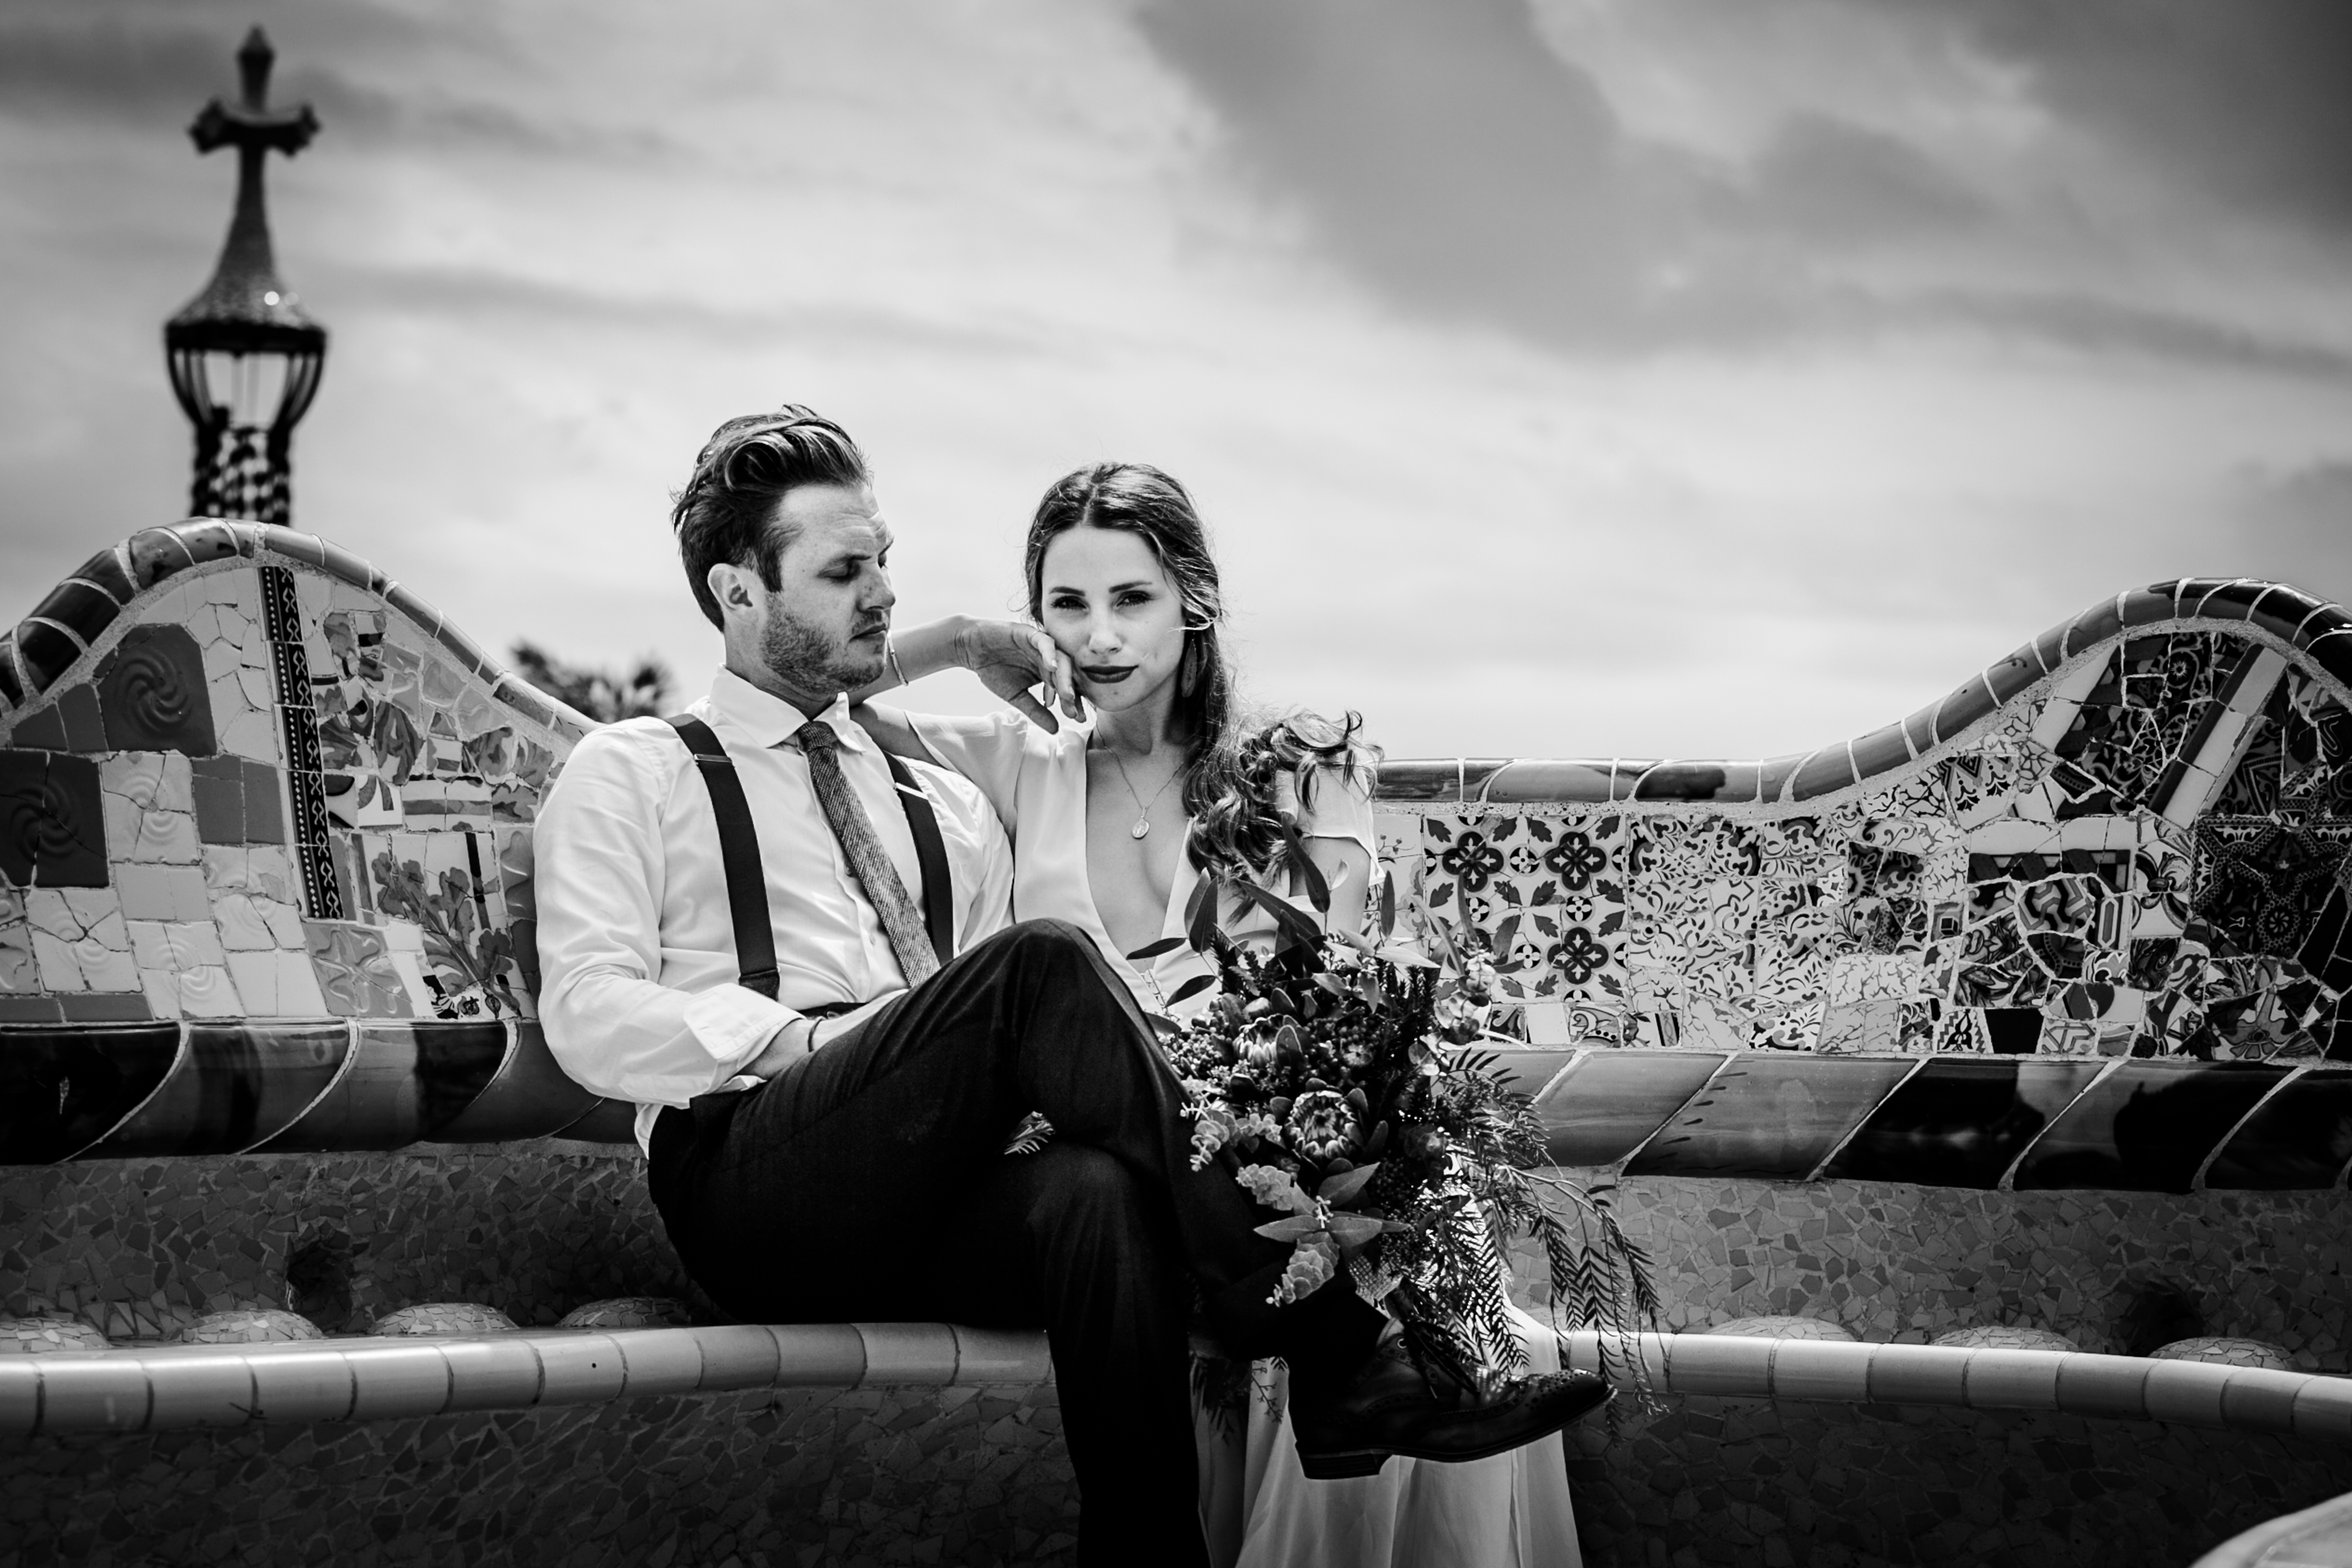 elopement in barcelona, elope in spain, elopement in spain, elopement in laberibto de horta, elopement in el Born, elopement in Park Guell, elopement in la boqueria, wedding in Barcelona, wedding couple in barcelona, elopement in the gothic quarter barcelona, wedding and elopement photographer barcelona, best elopement photos in barcelona, bride and groom in barcelona, spanish elopement, best wedding photos barcelona, best wedding photographer spain, destination wedding in spain, fotografo de boda barcelona, sesion de pareja en barcelona